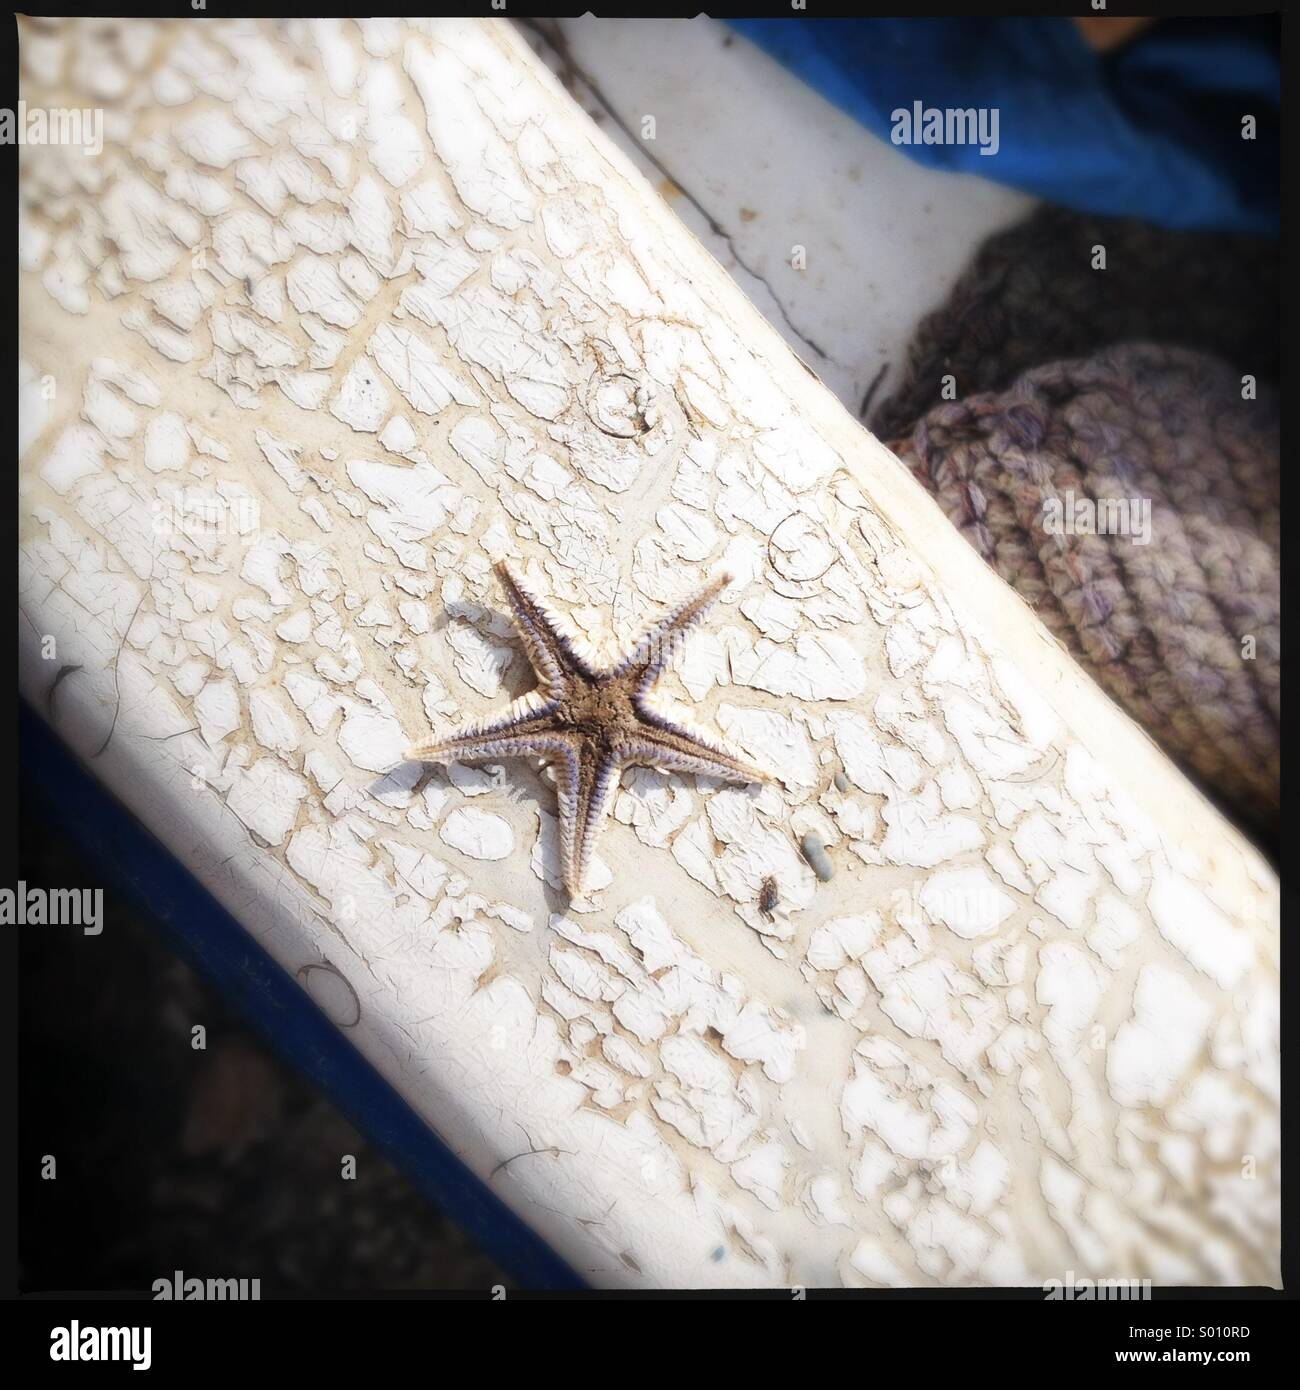 Tiny dried starfish on edge of cracked boat in Sampiere, Sicily. - Stock Image